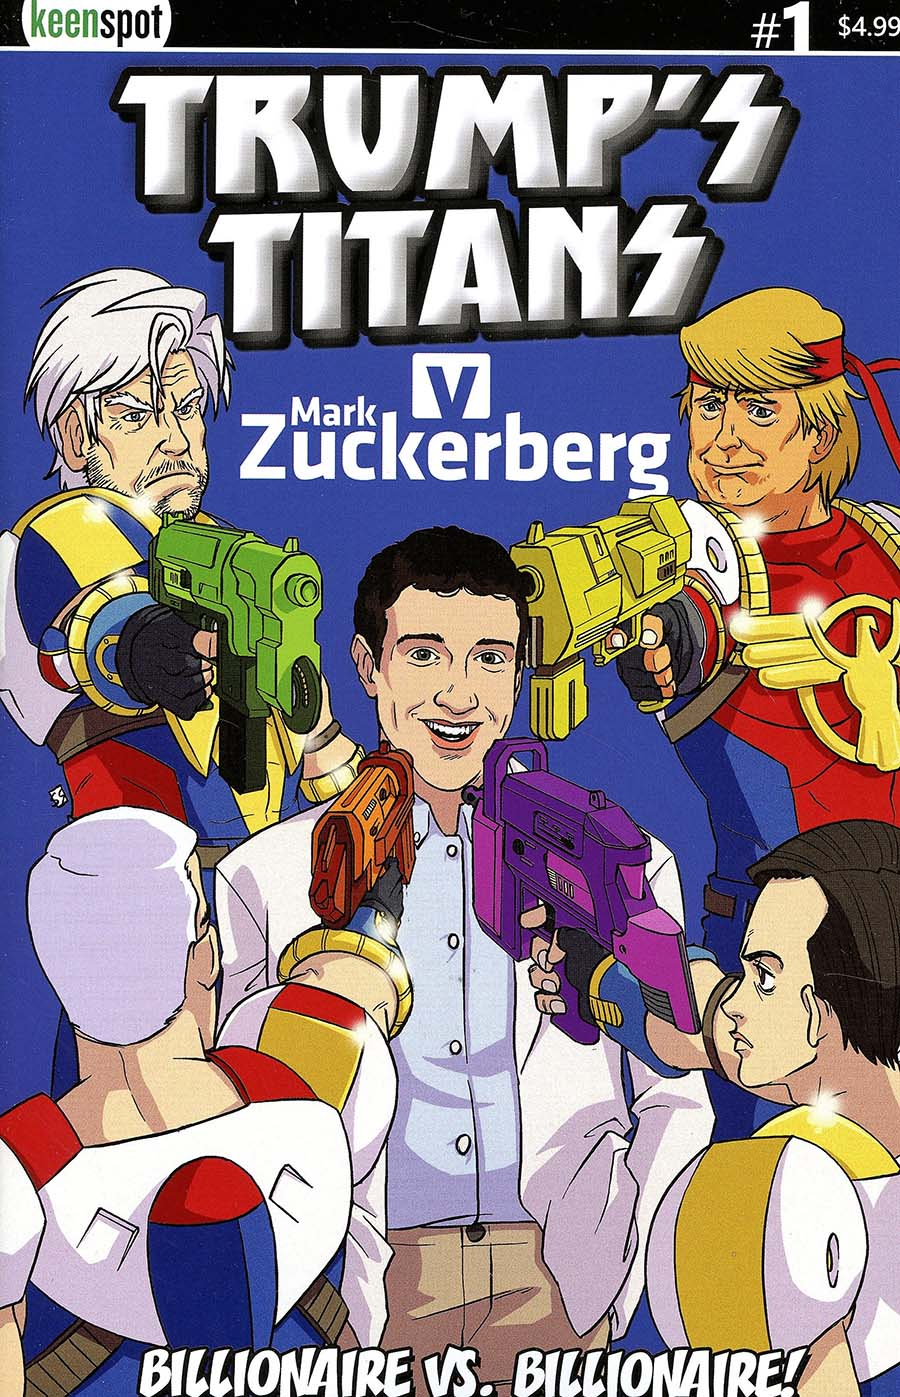 Trumps Titans vs Mark Zuckerberg #1 Cover A Regular Mark Zuckerberg Outnumbered Cover